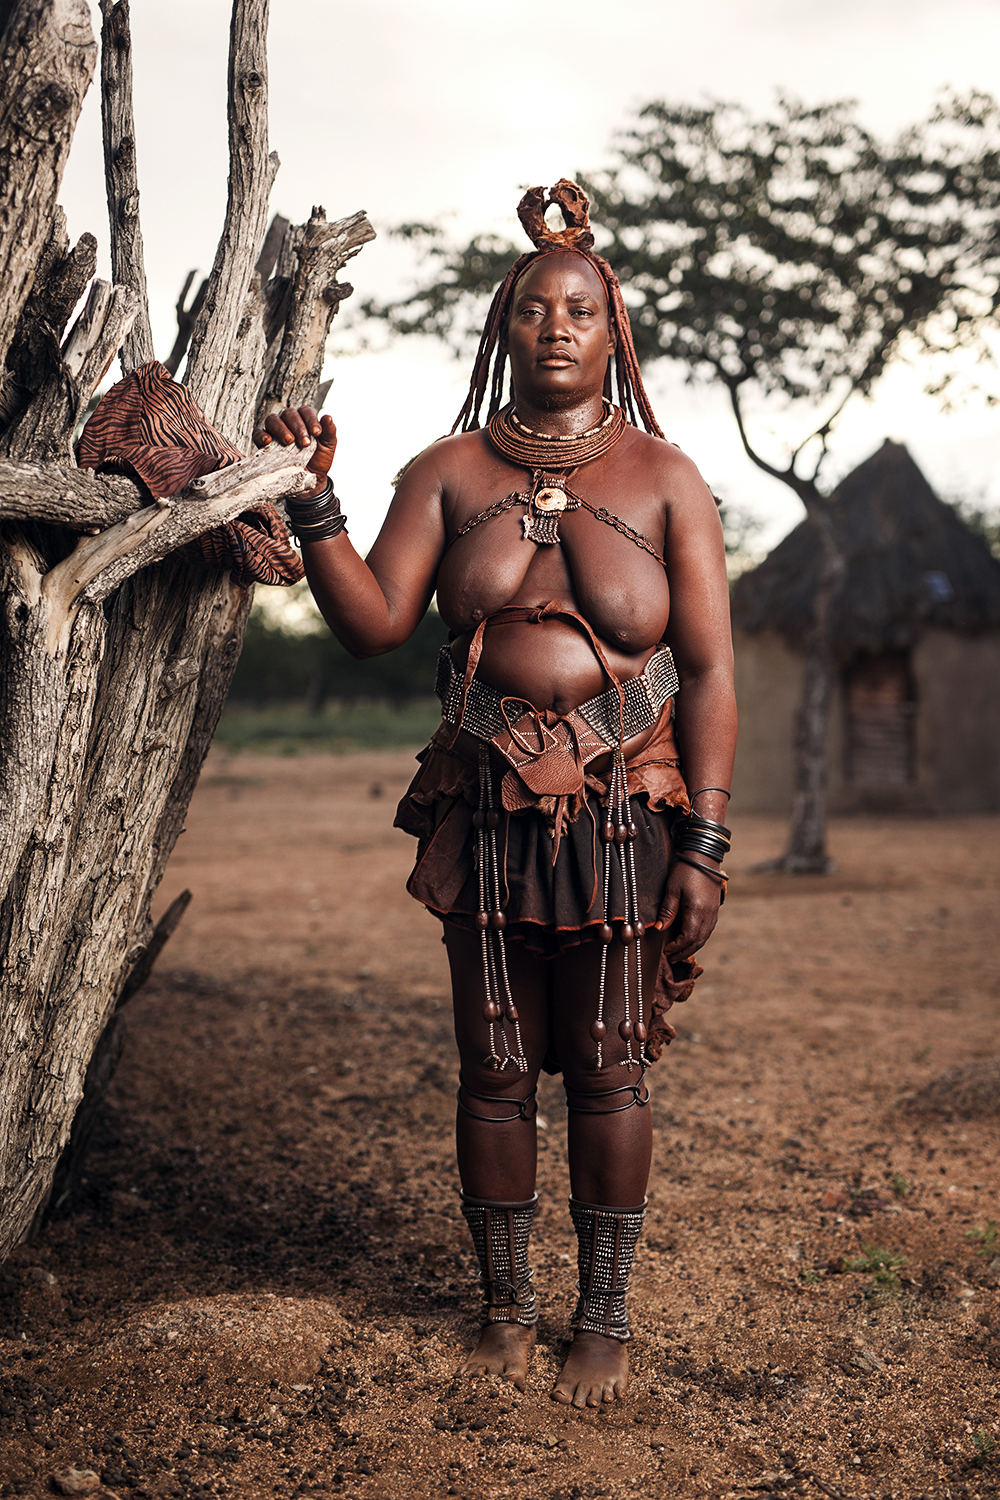 HIMBA strobe 08 Final.png